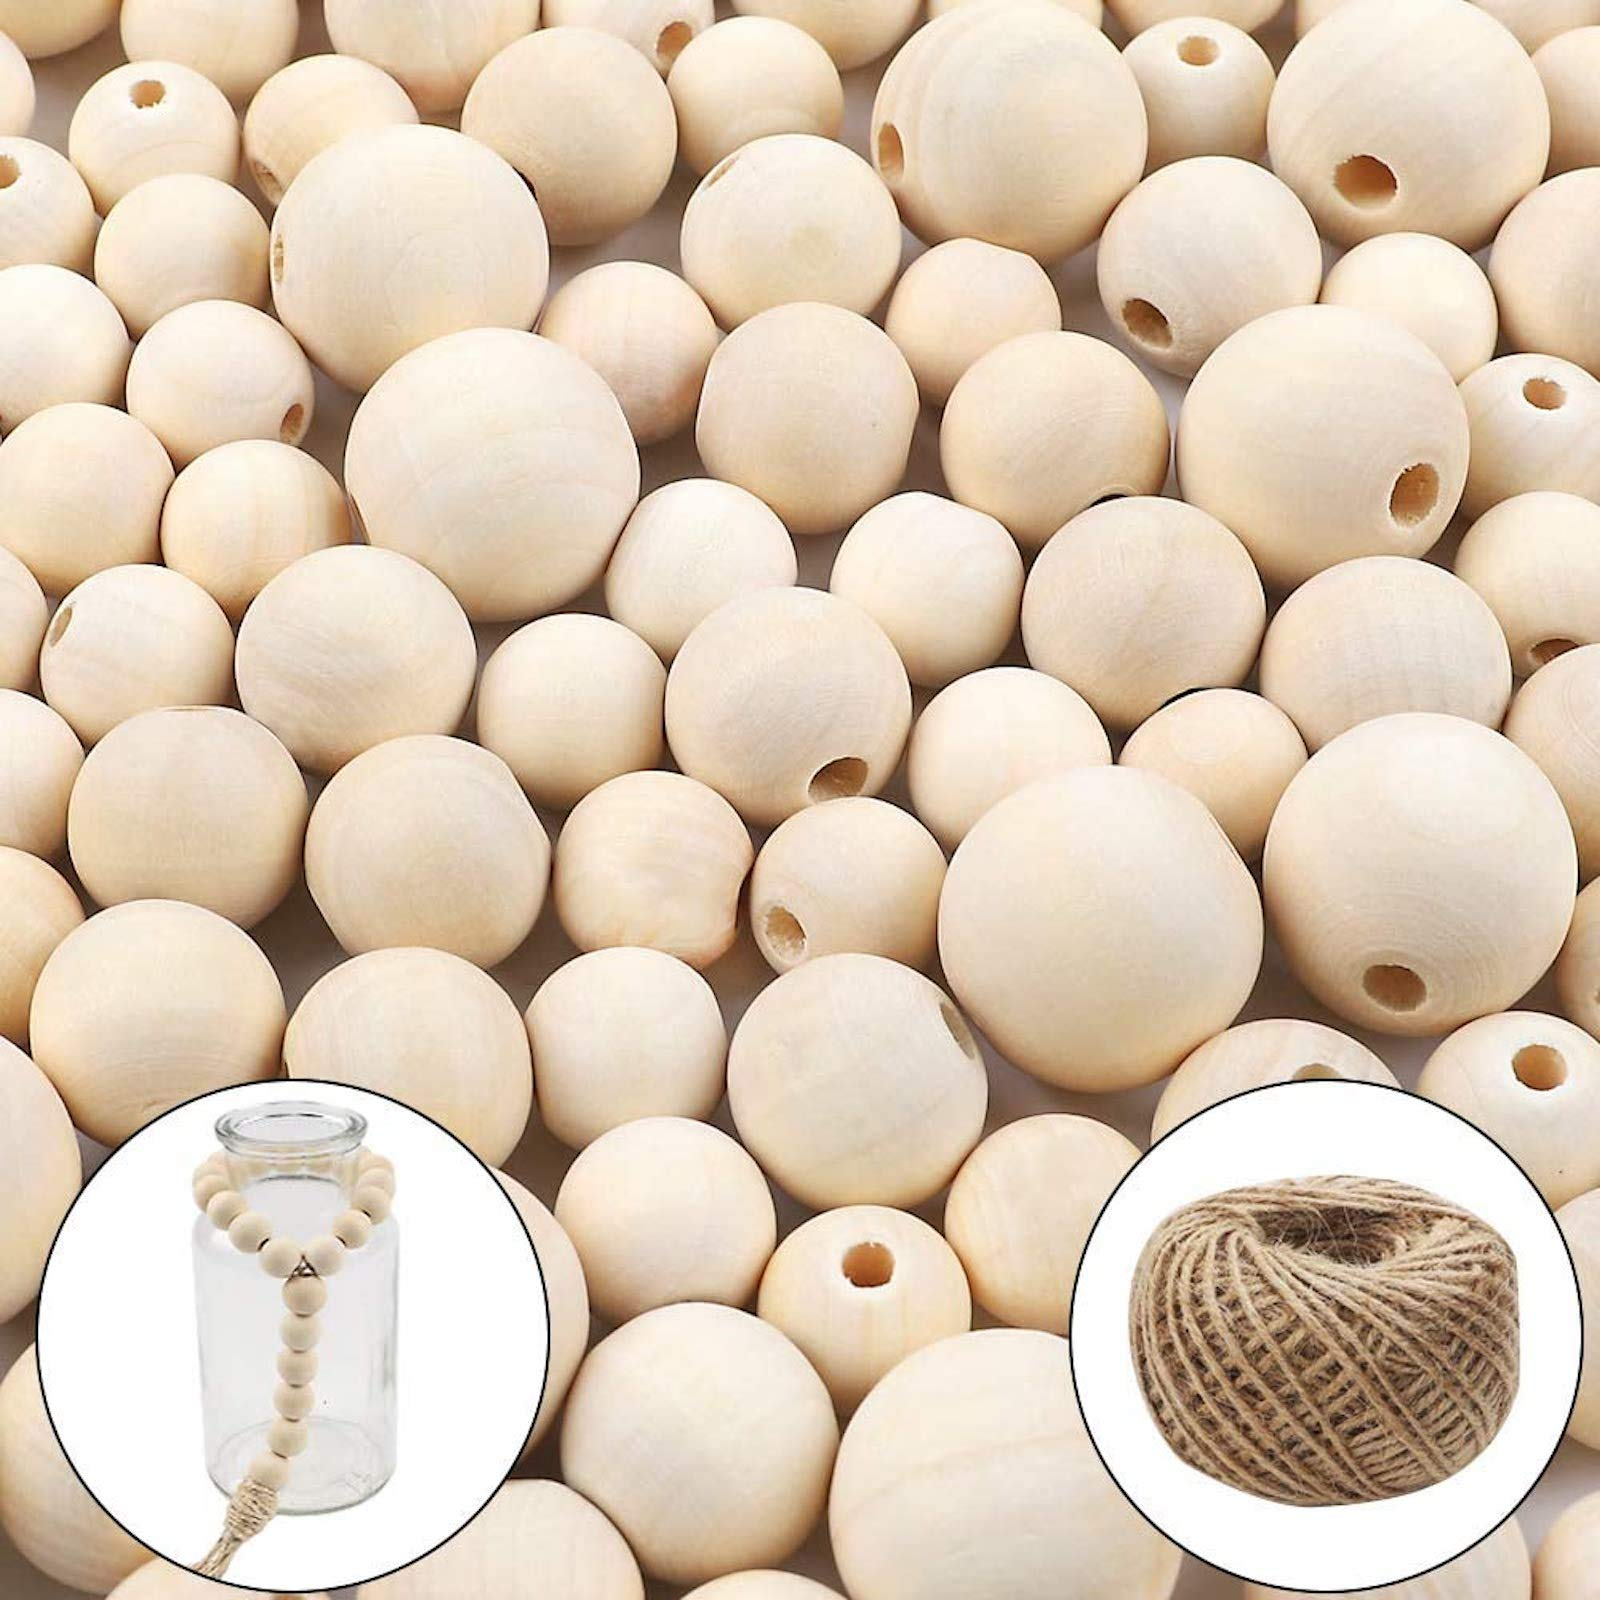 DICOBD 150pcs Large Wooden Beads Natural Round Unfinished Wood Beads for Garlands